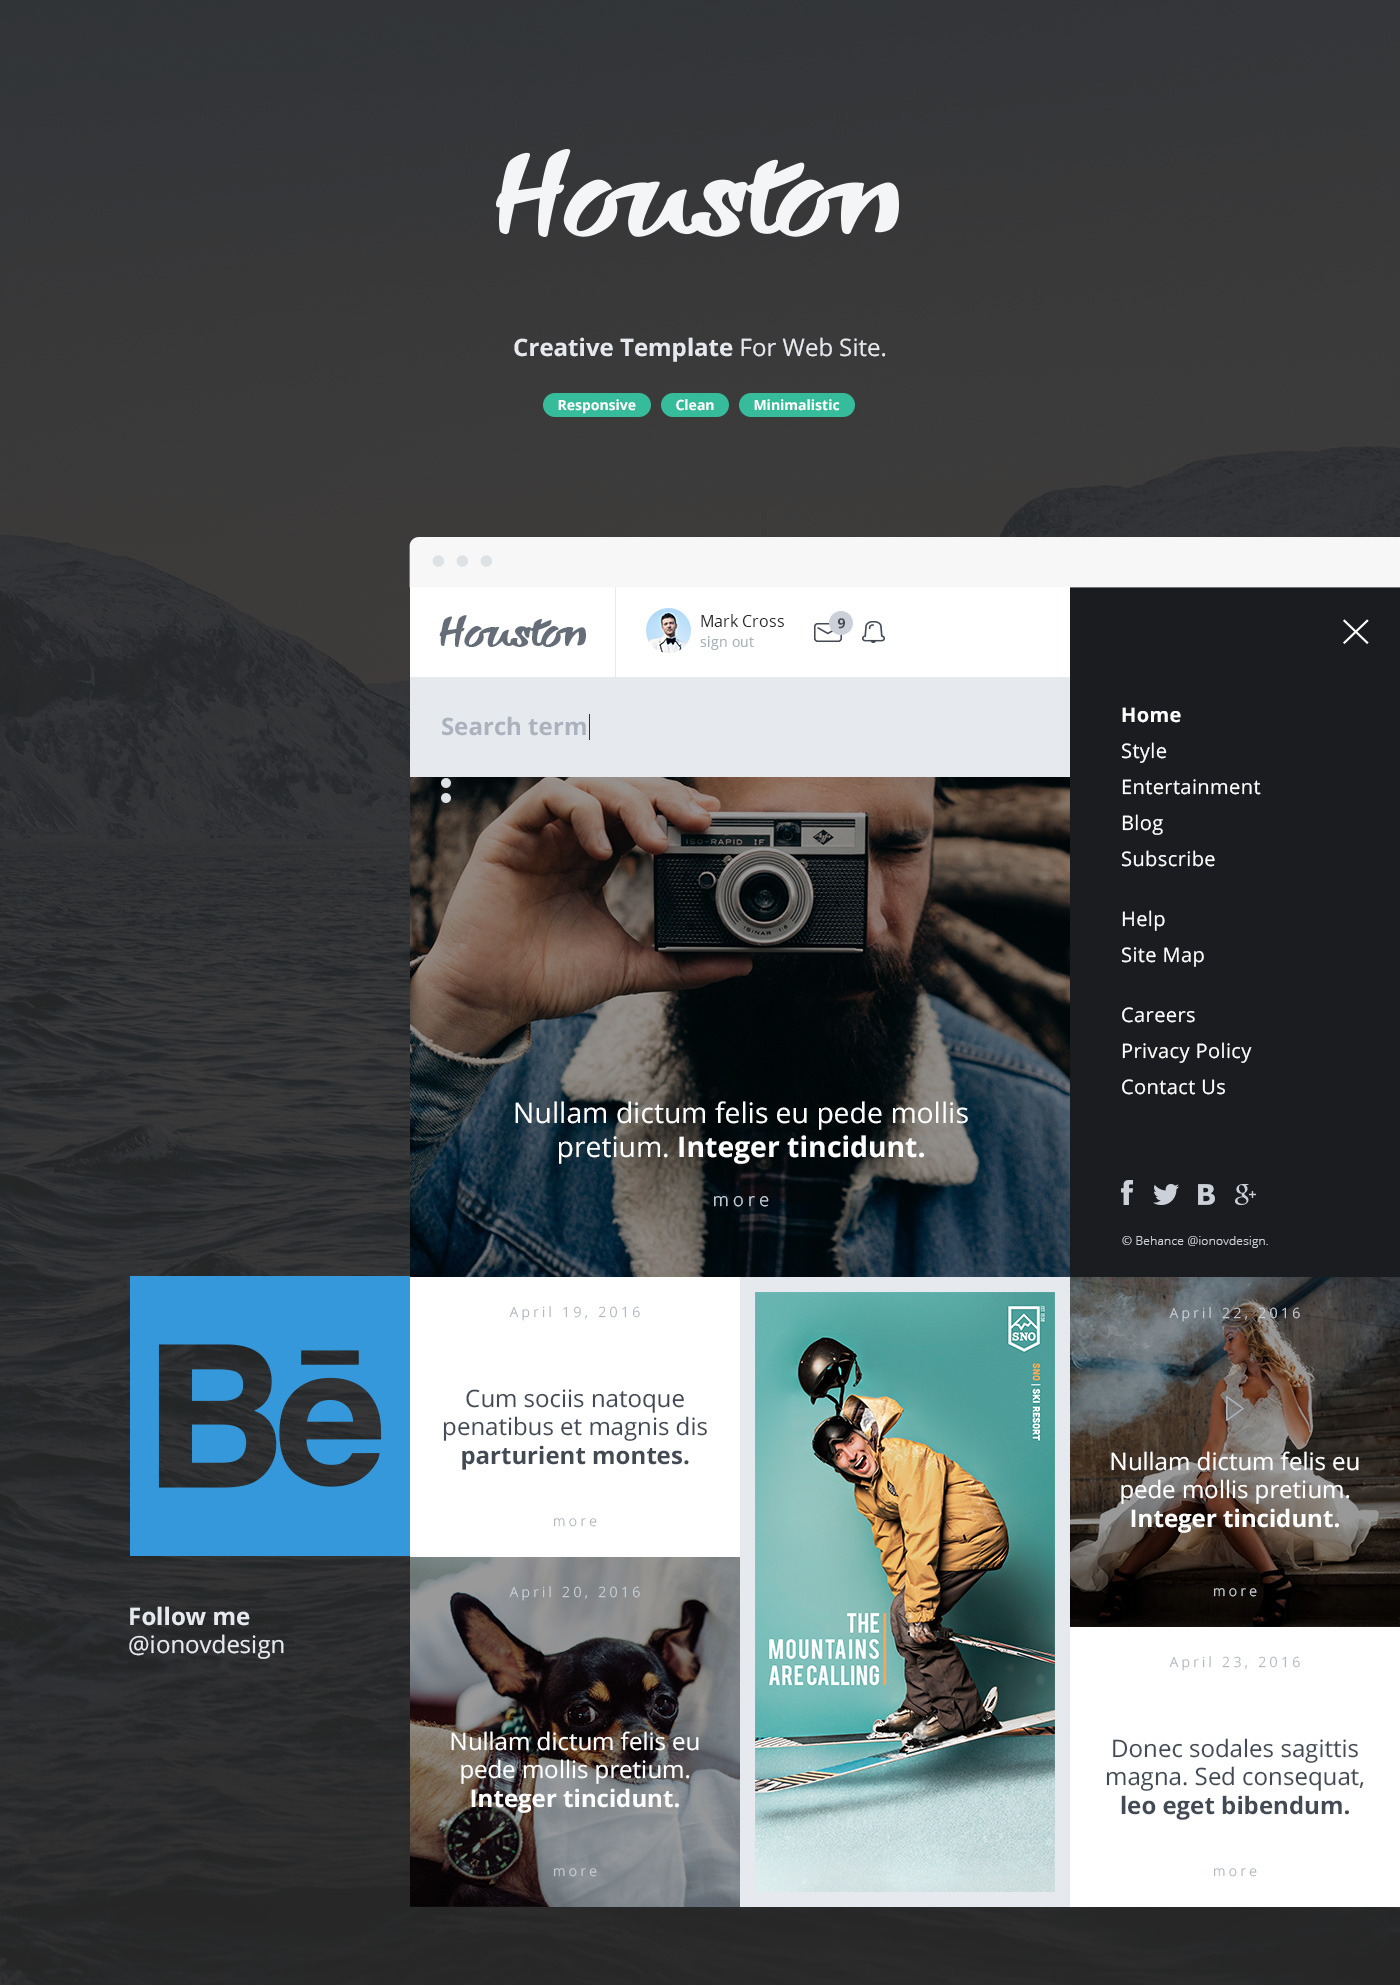 Houston - Creative Template For Web Site on Behance